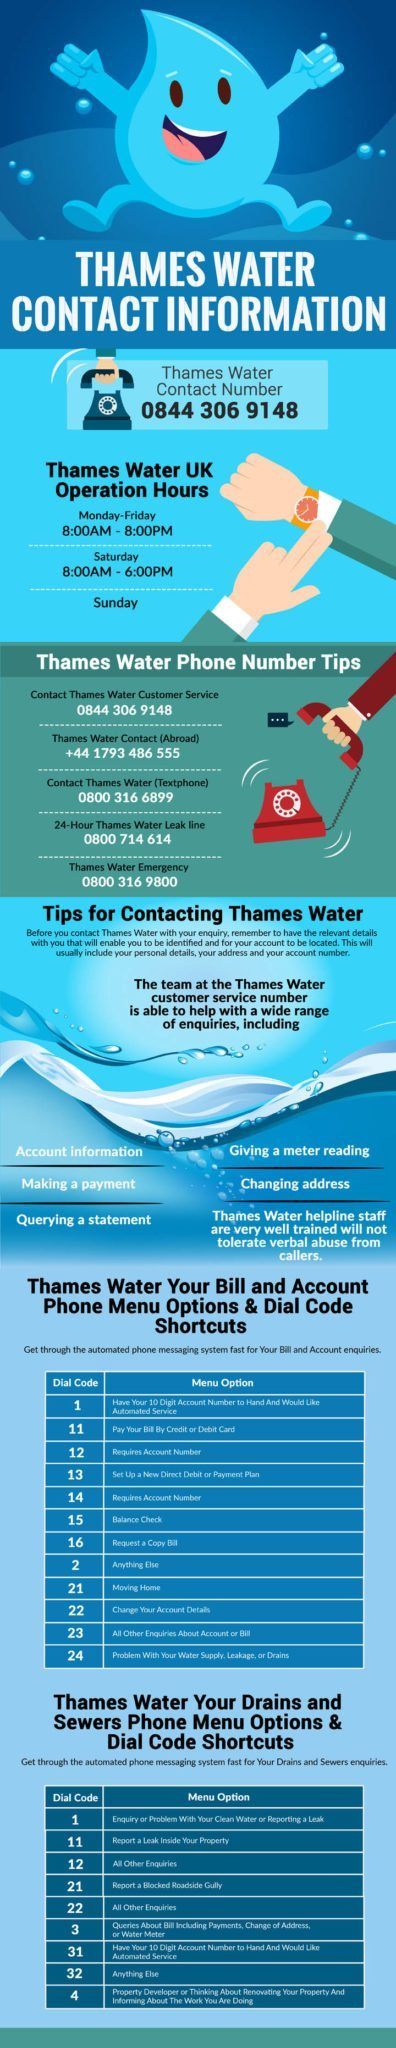 Thames Water Customer Service